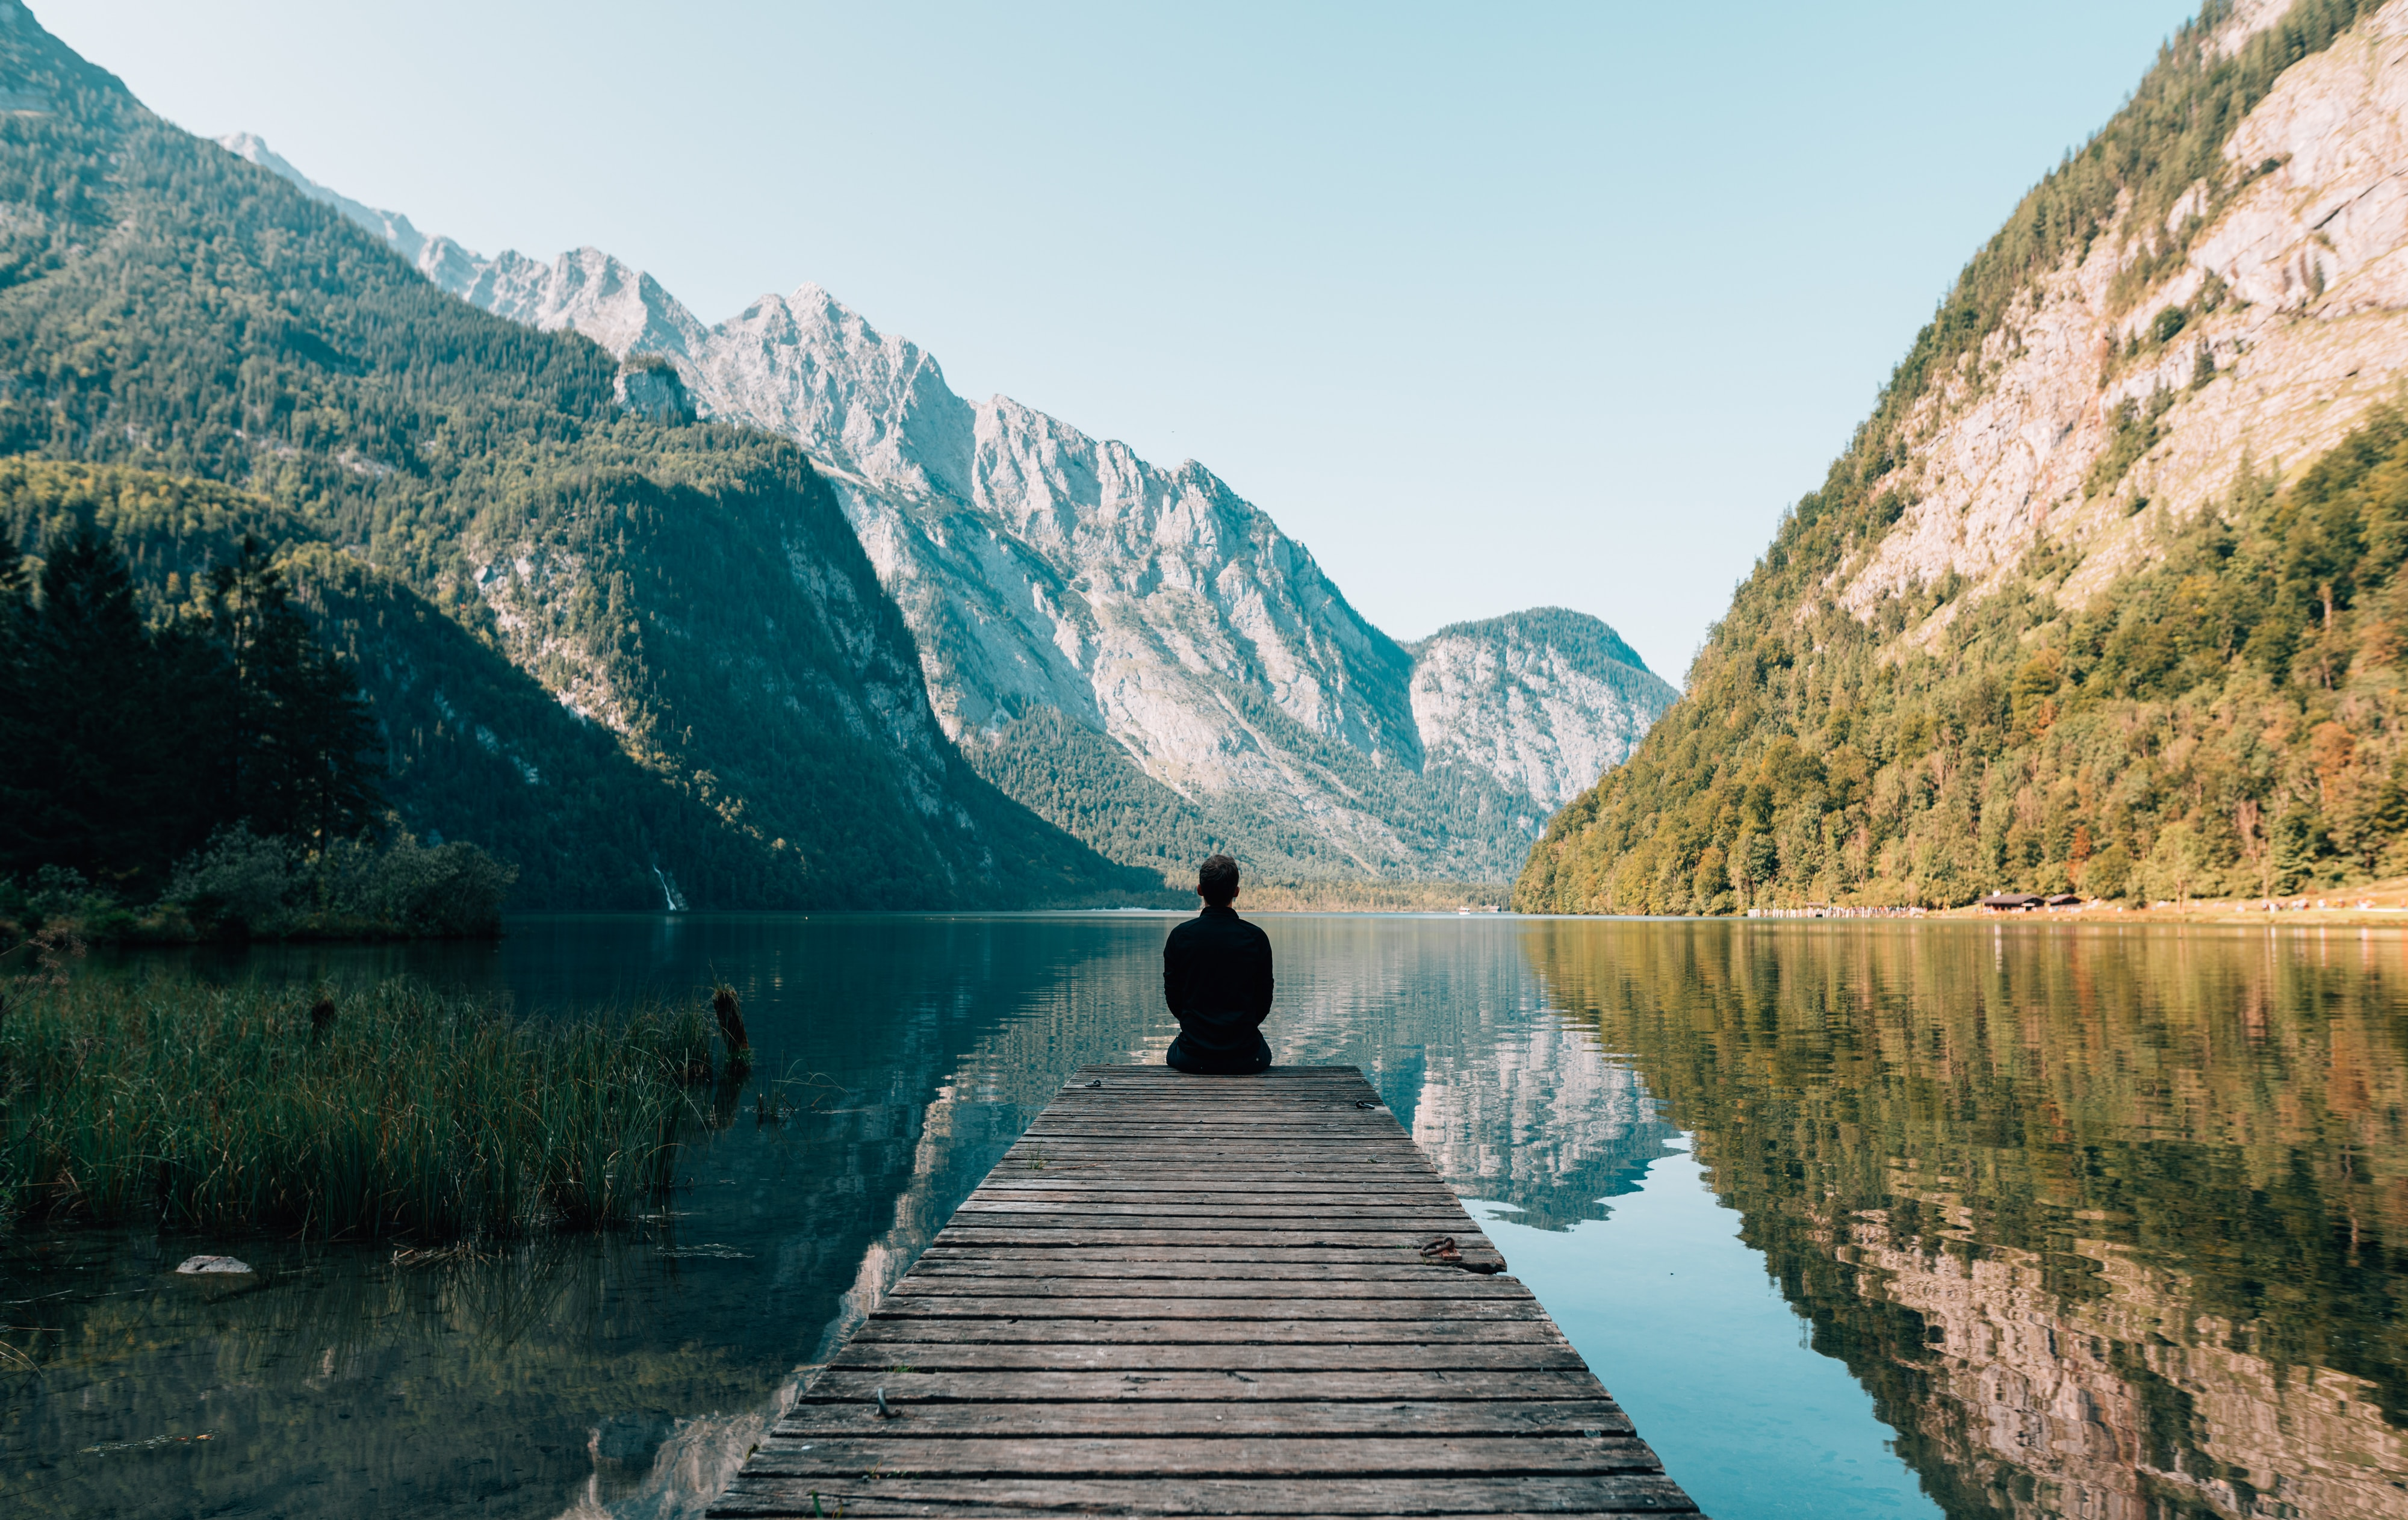 Someone meditating on a jetty with mountains in the background